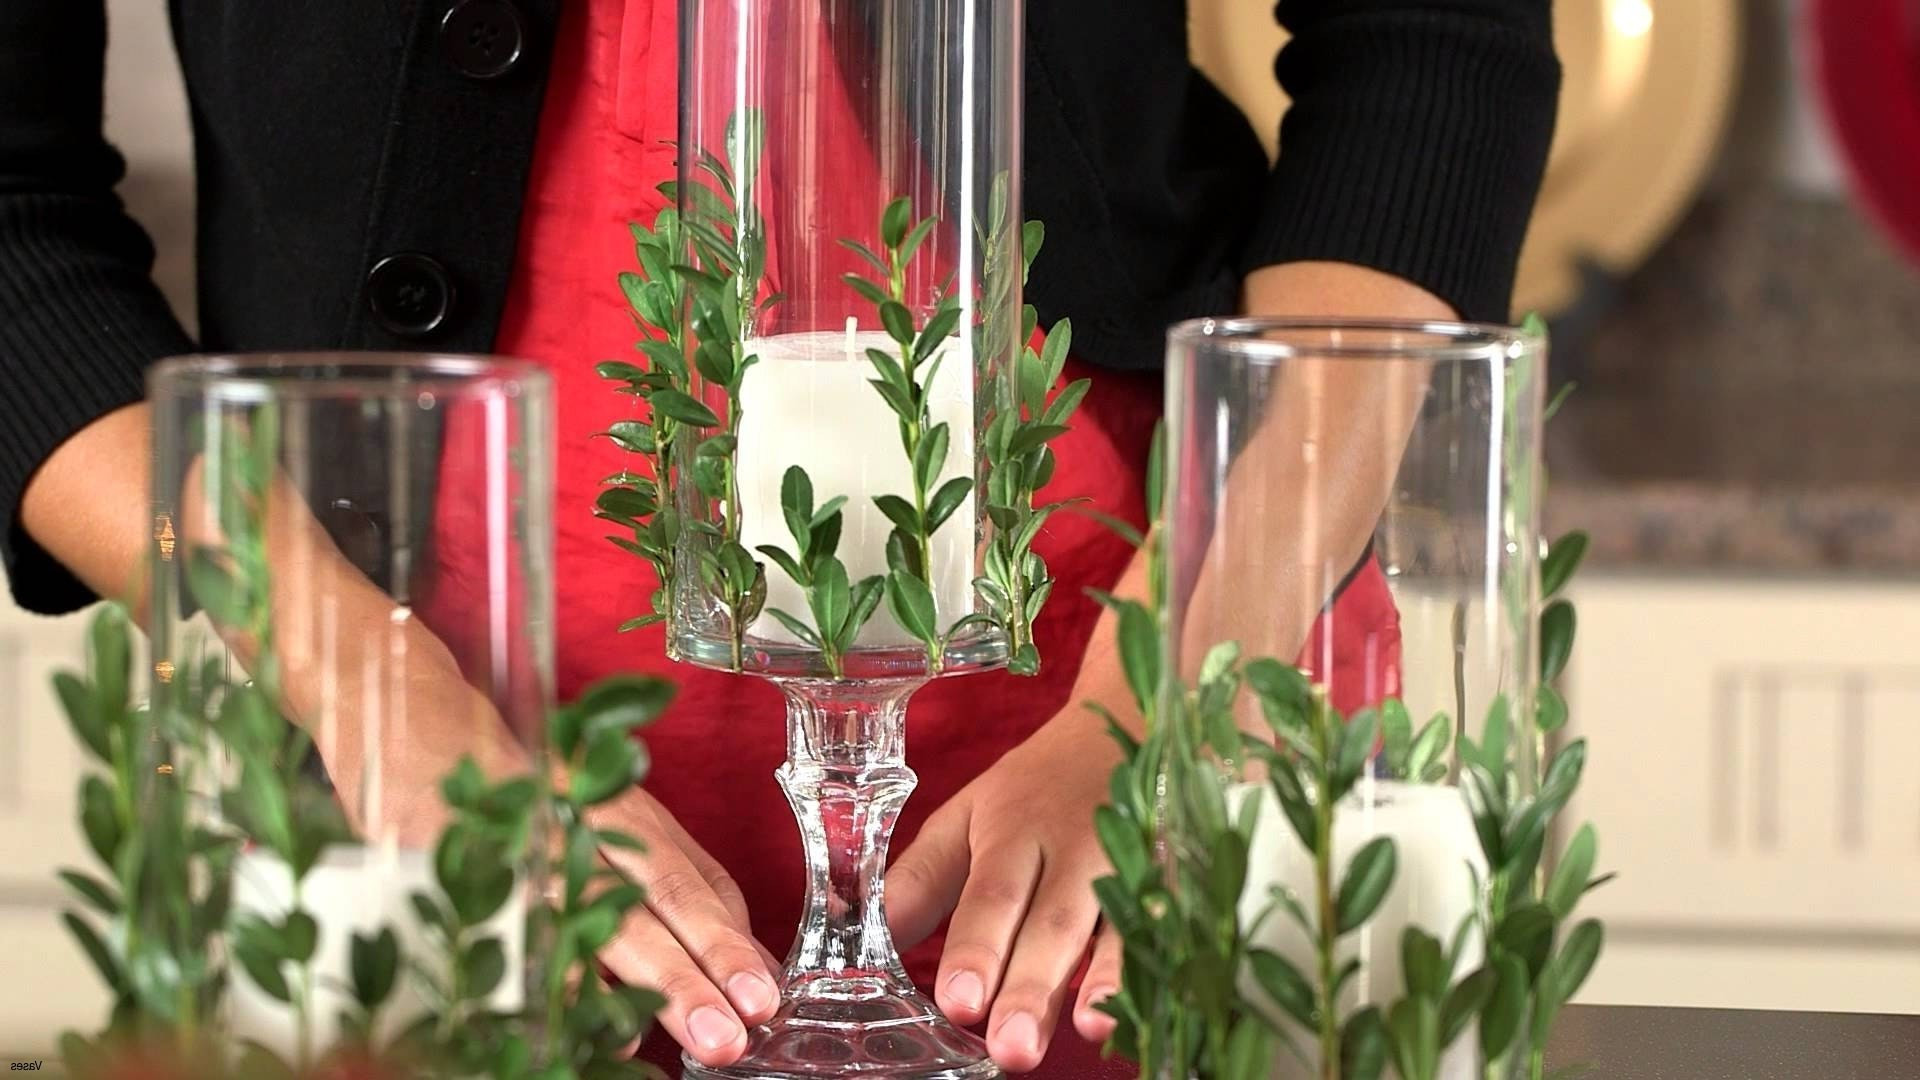 tall glass vase with artificial flowers of decorative branches for weddings awesome tall vase centerpiece ideas intended for decorative branches for weddings awesome 18 new wedding centerpiece decoration ideas of decorative branches for weddings